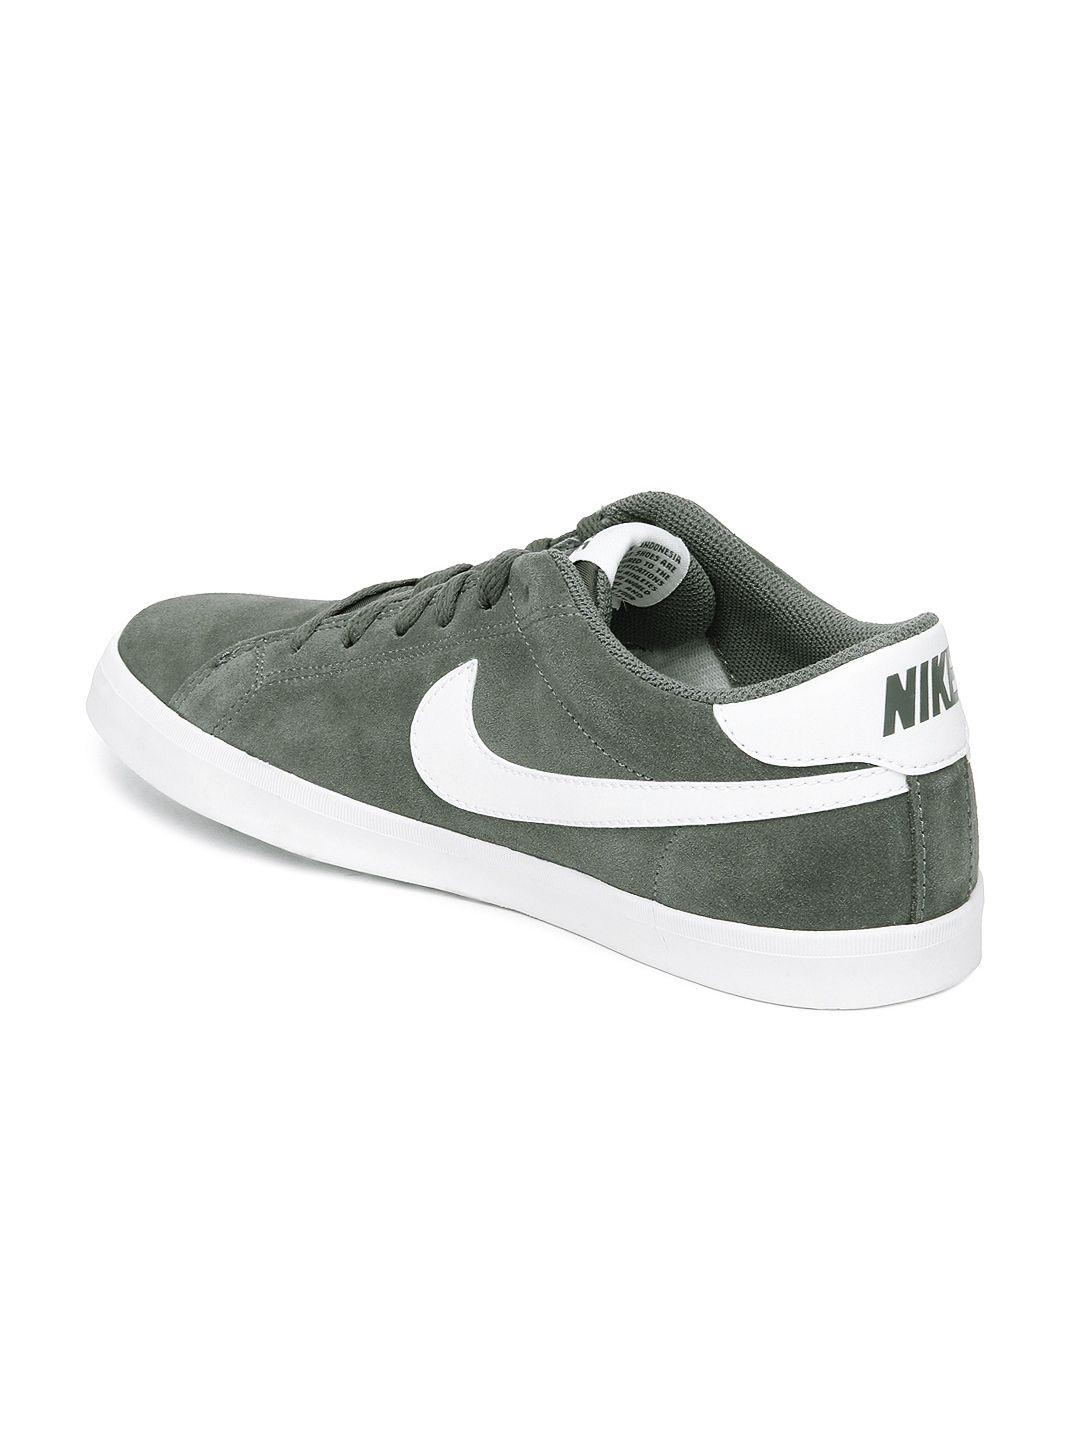 view product details more casual shoes by nike more green